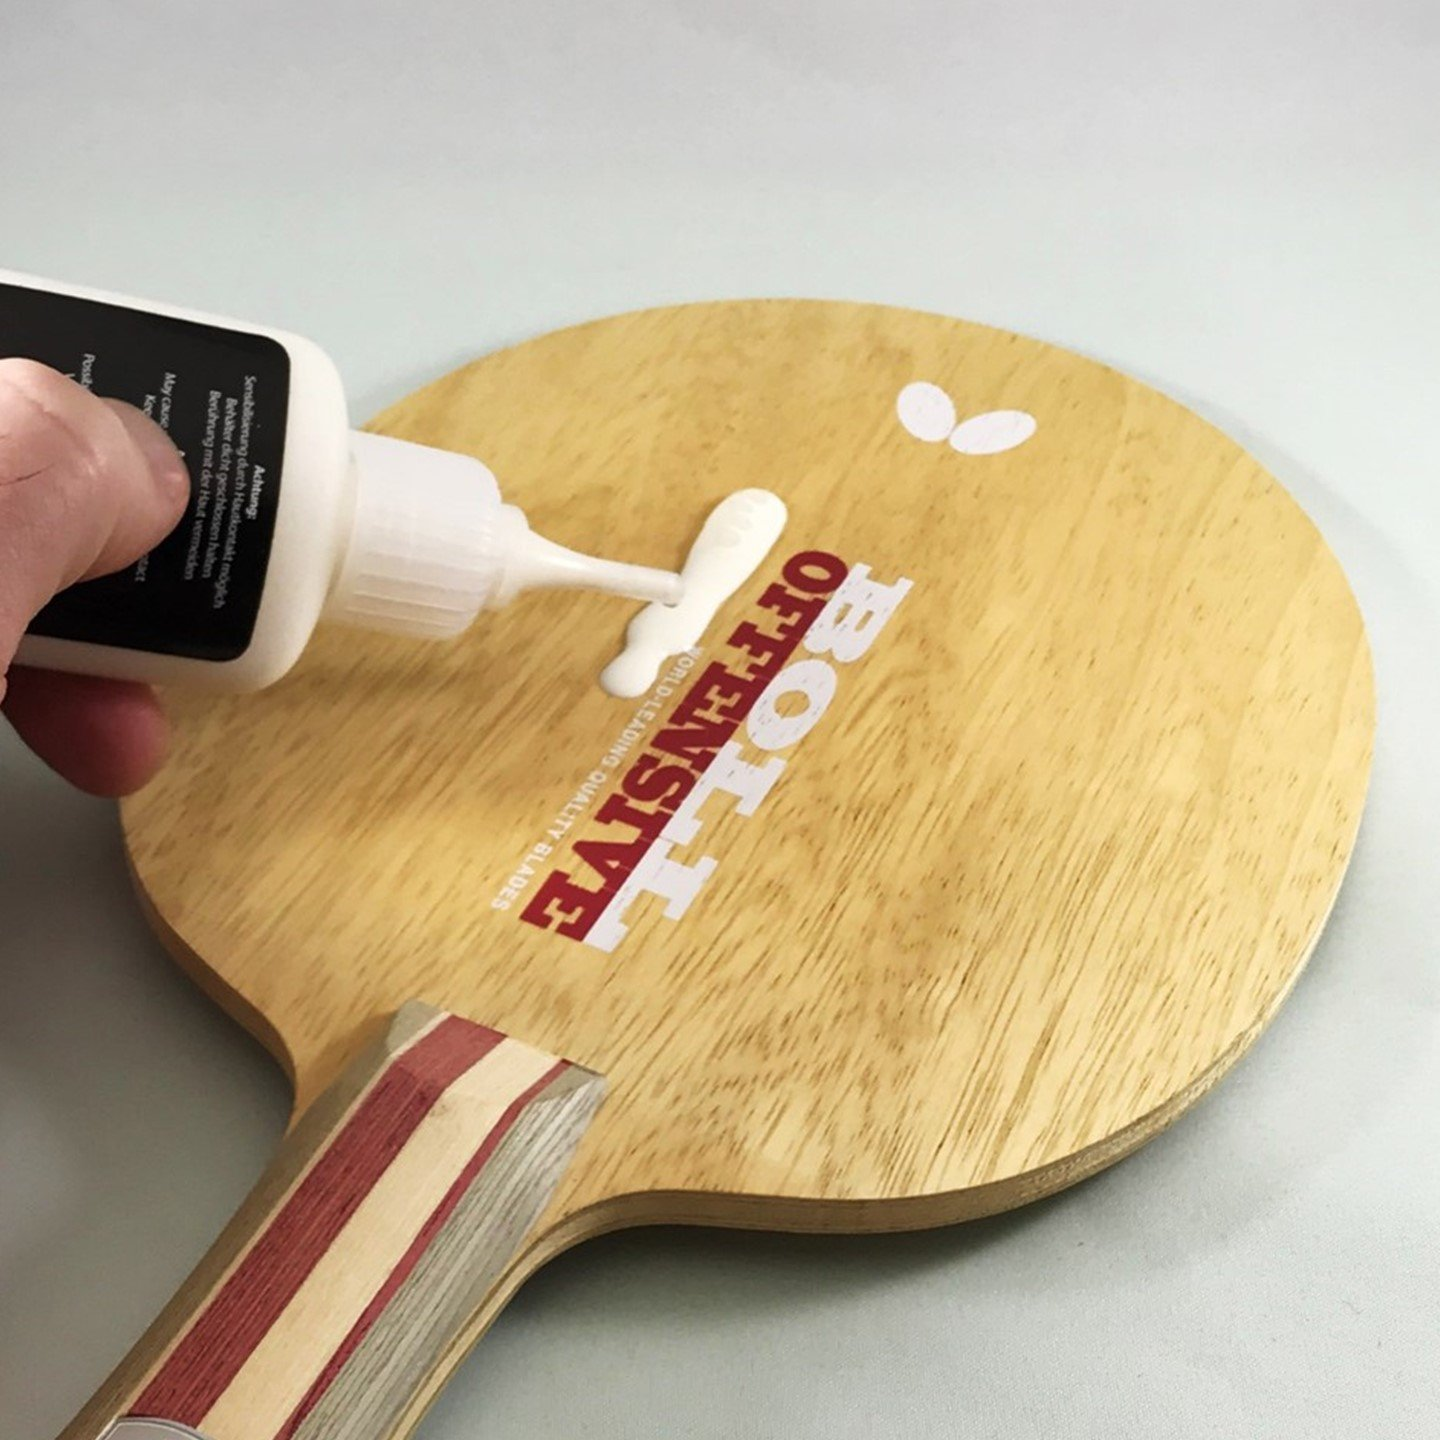 Butterfly Free Chack Table Tennis Racket Glue Comes with Sponges and Application Clip Perfect for Assembling Ping Pong Paddle